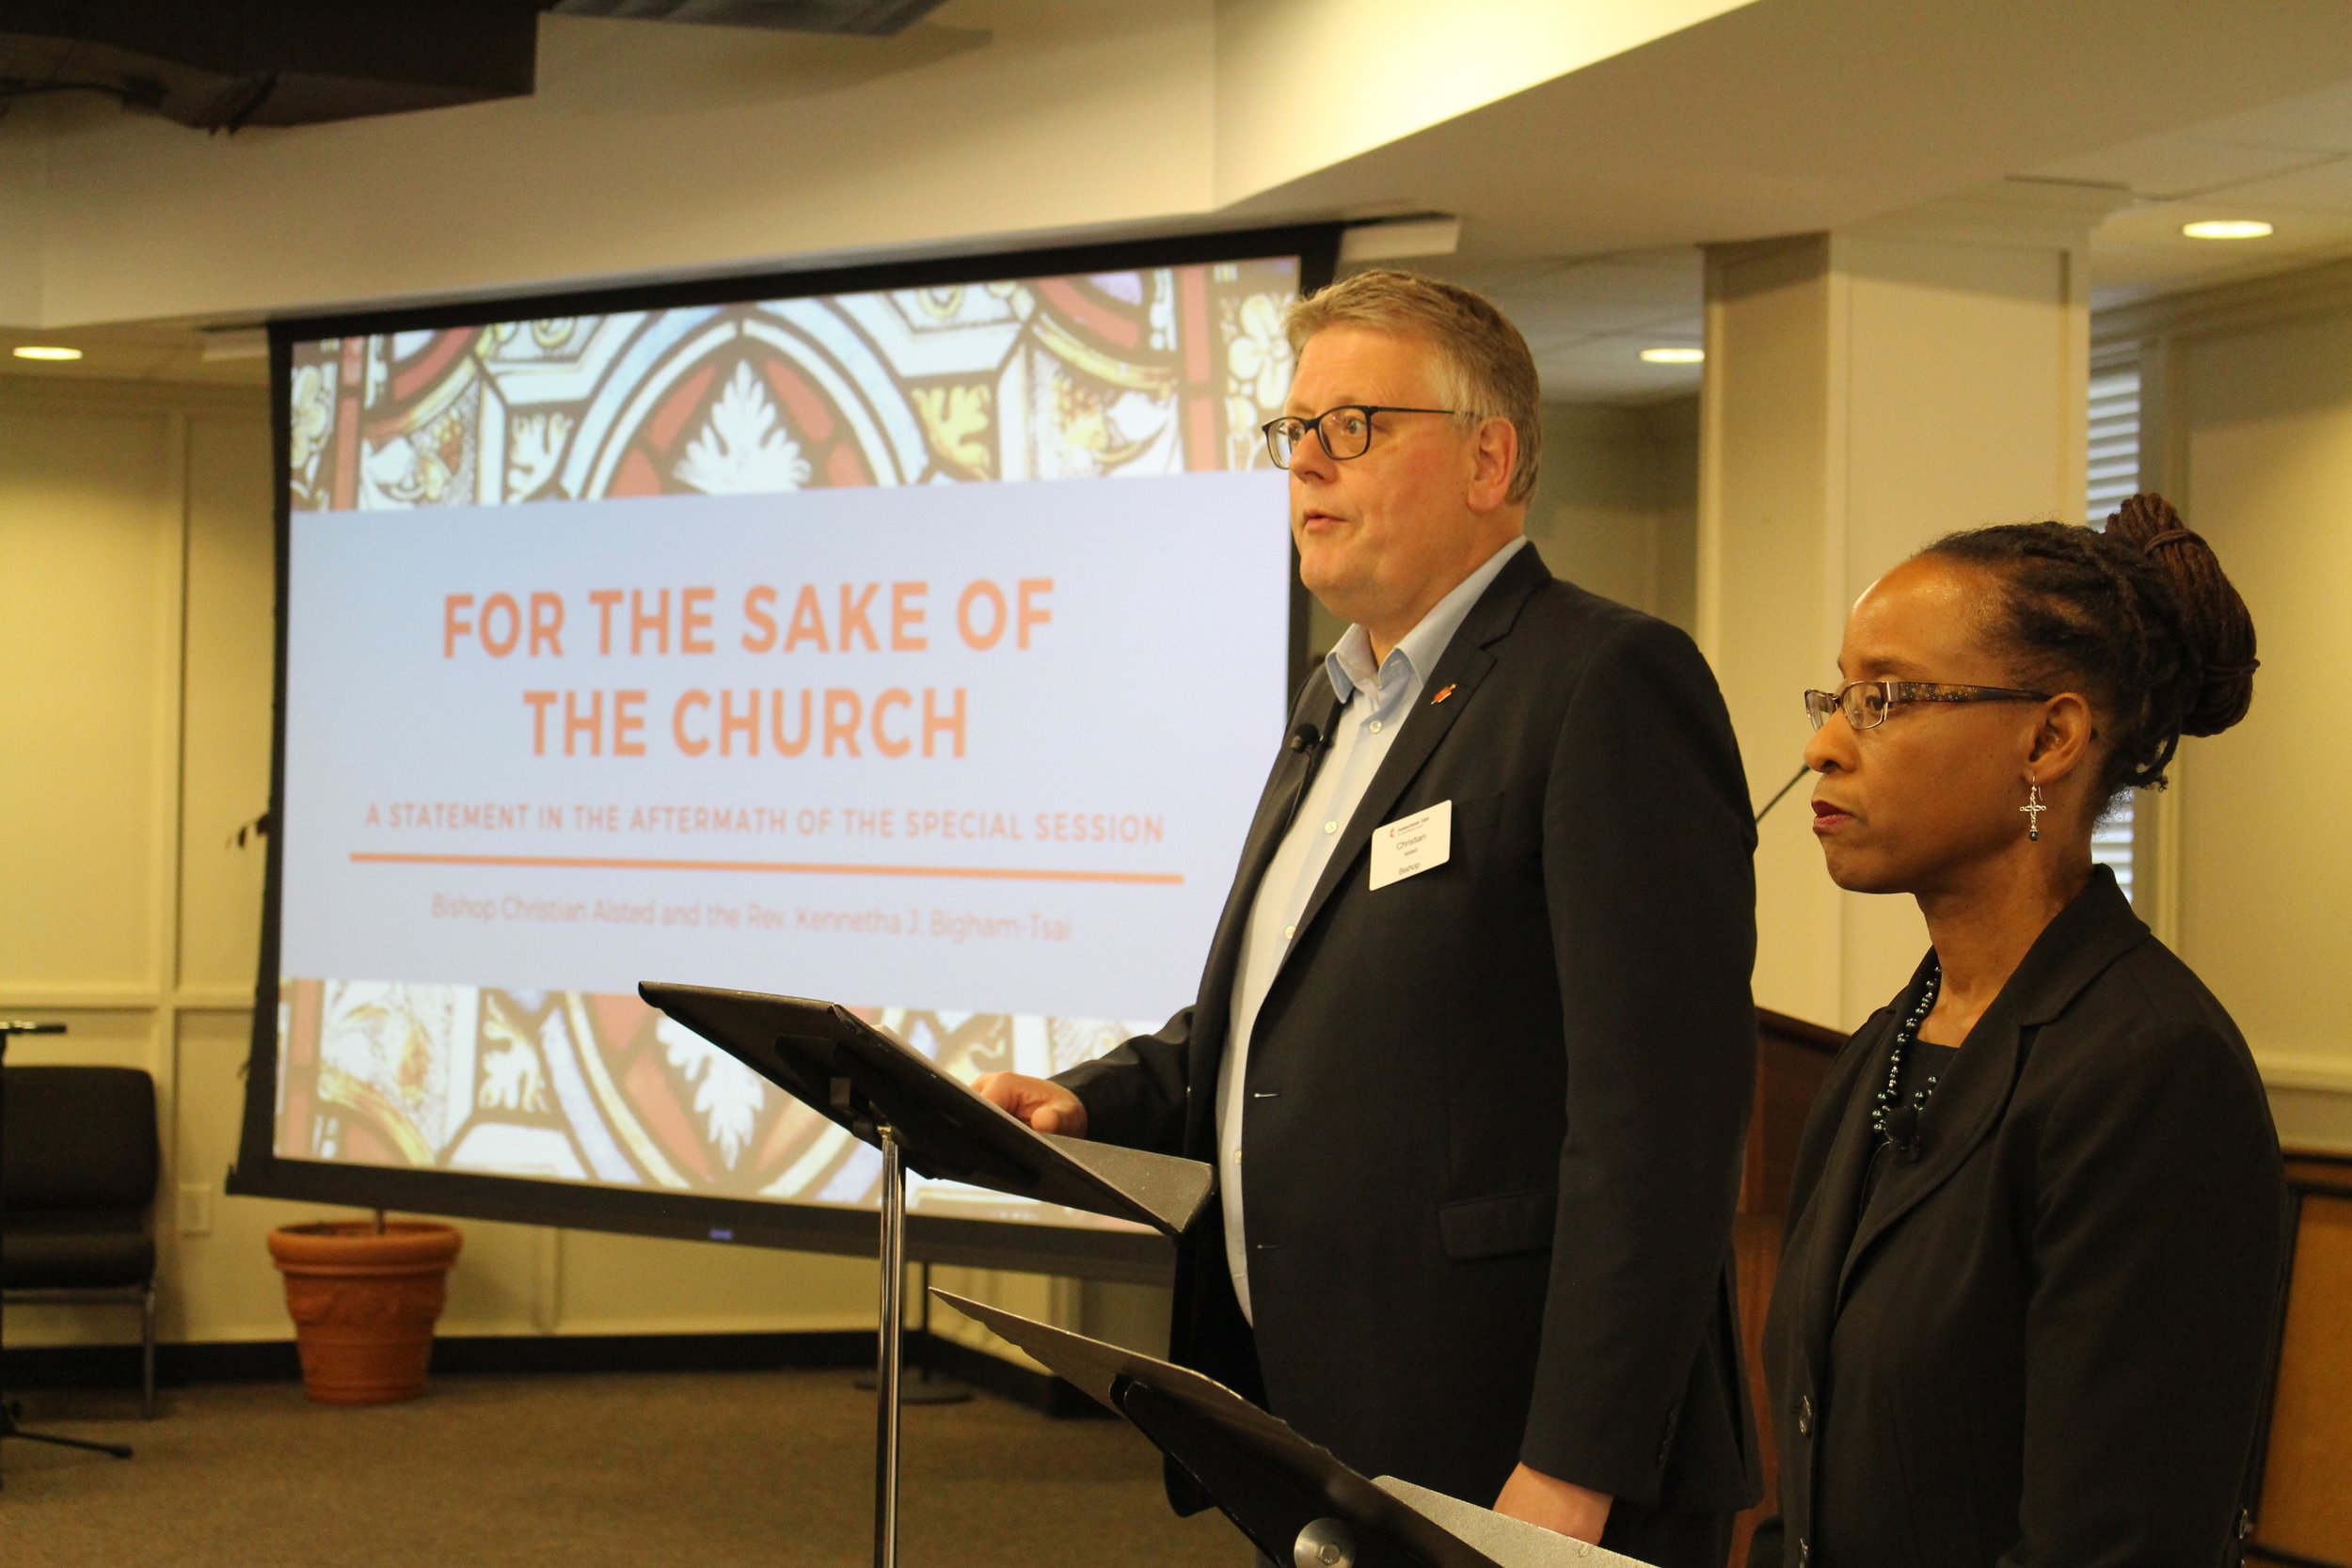 """Bishop Alsted and the Rev. Kennetha J. Bigham-Tsai deliver the """"For the Sake of the Church"""" statement at the Connectional Table meeting in April 2019."""